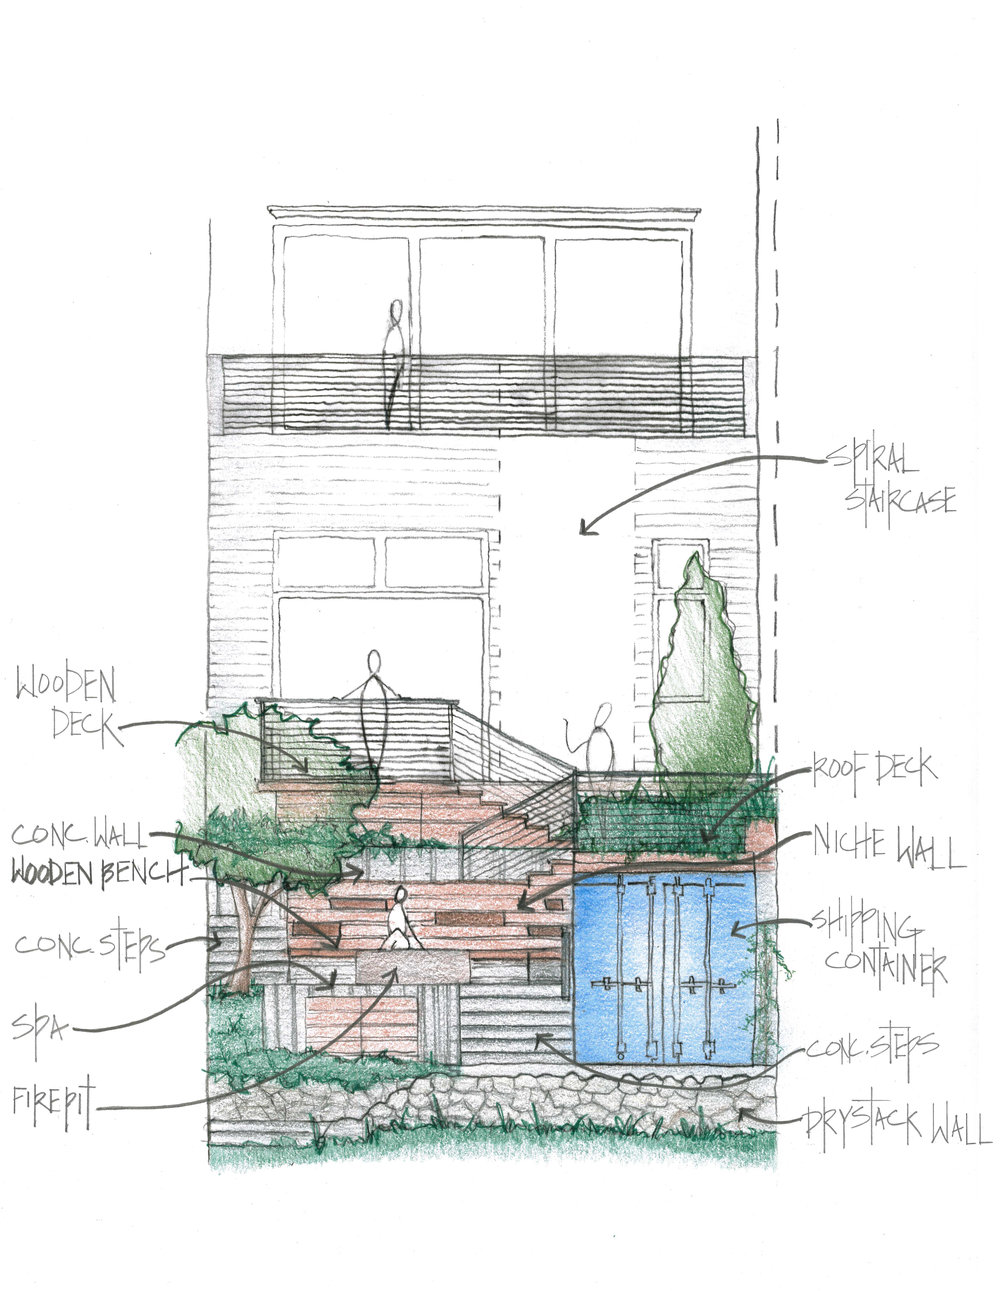 A hand drawn conceptual elevation shows the plan for the decks and how the vertical spaces will interact.